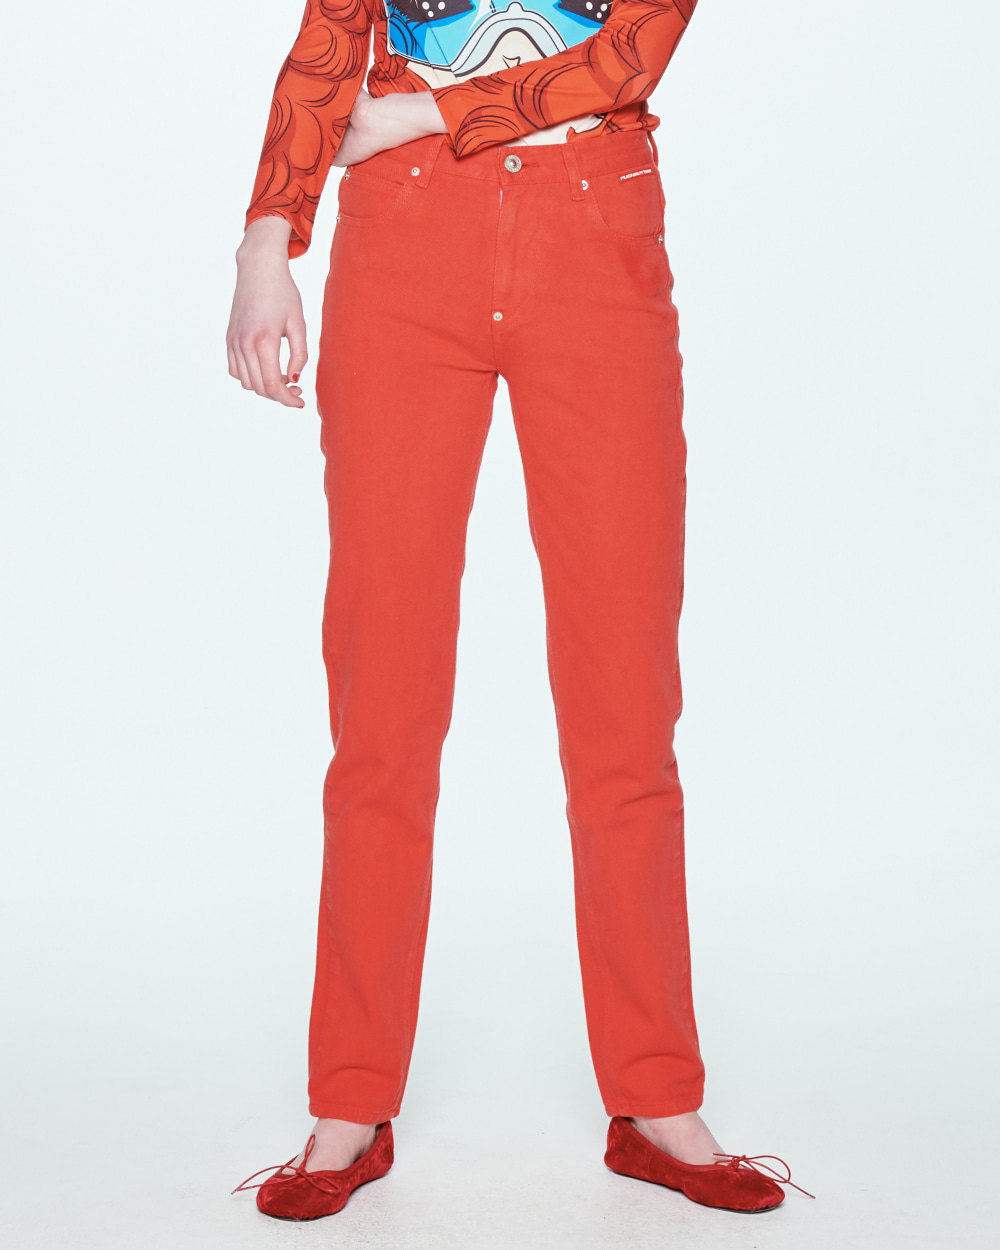 SS20 [공효진 착용] STRAIGHT RED JEANS